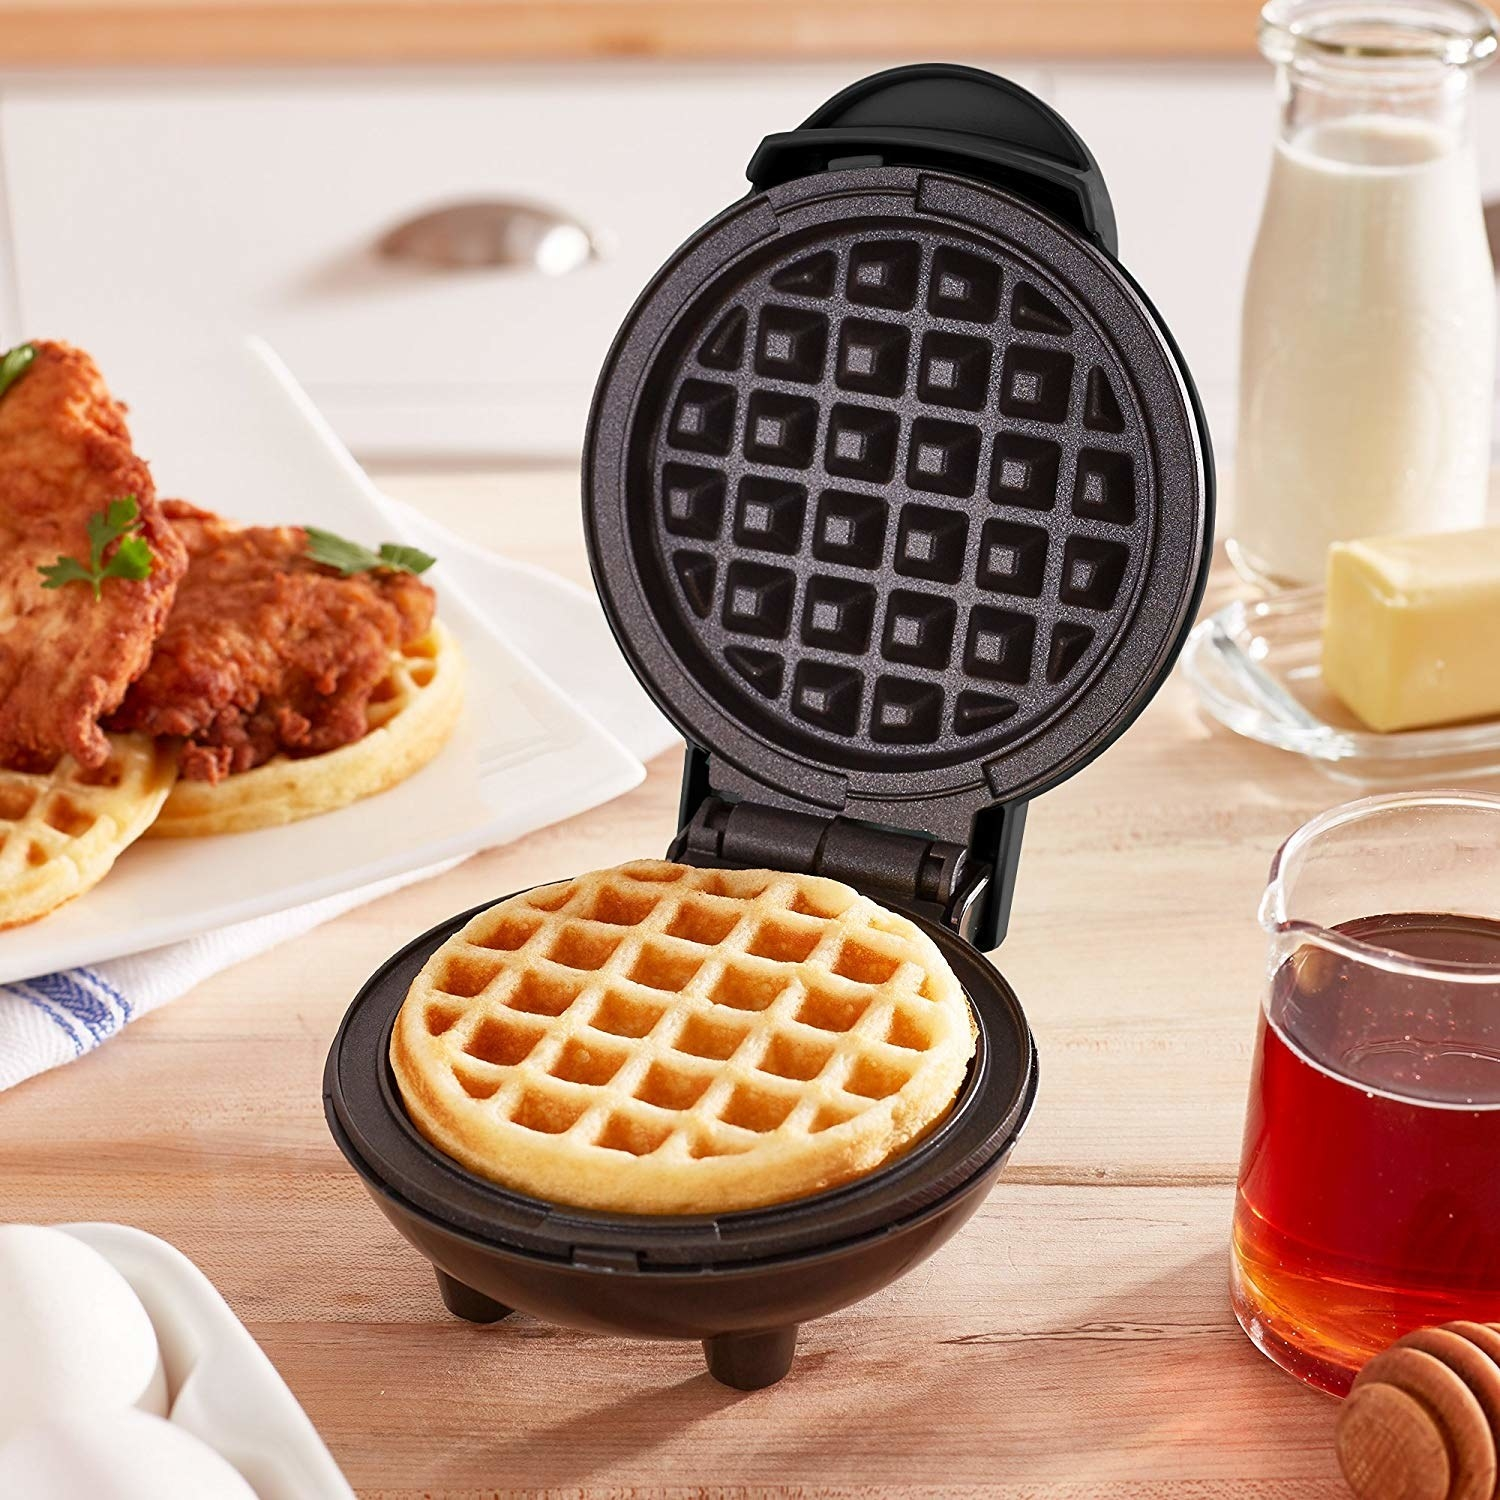 A mini waffle maker on a wooden table with a cooked waffle inside